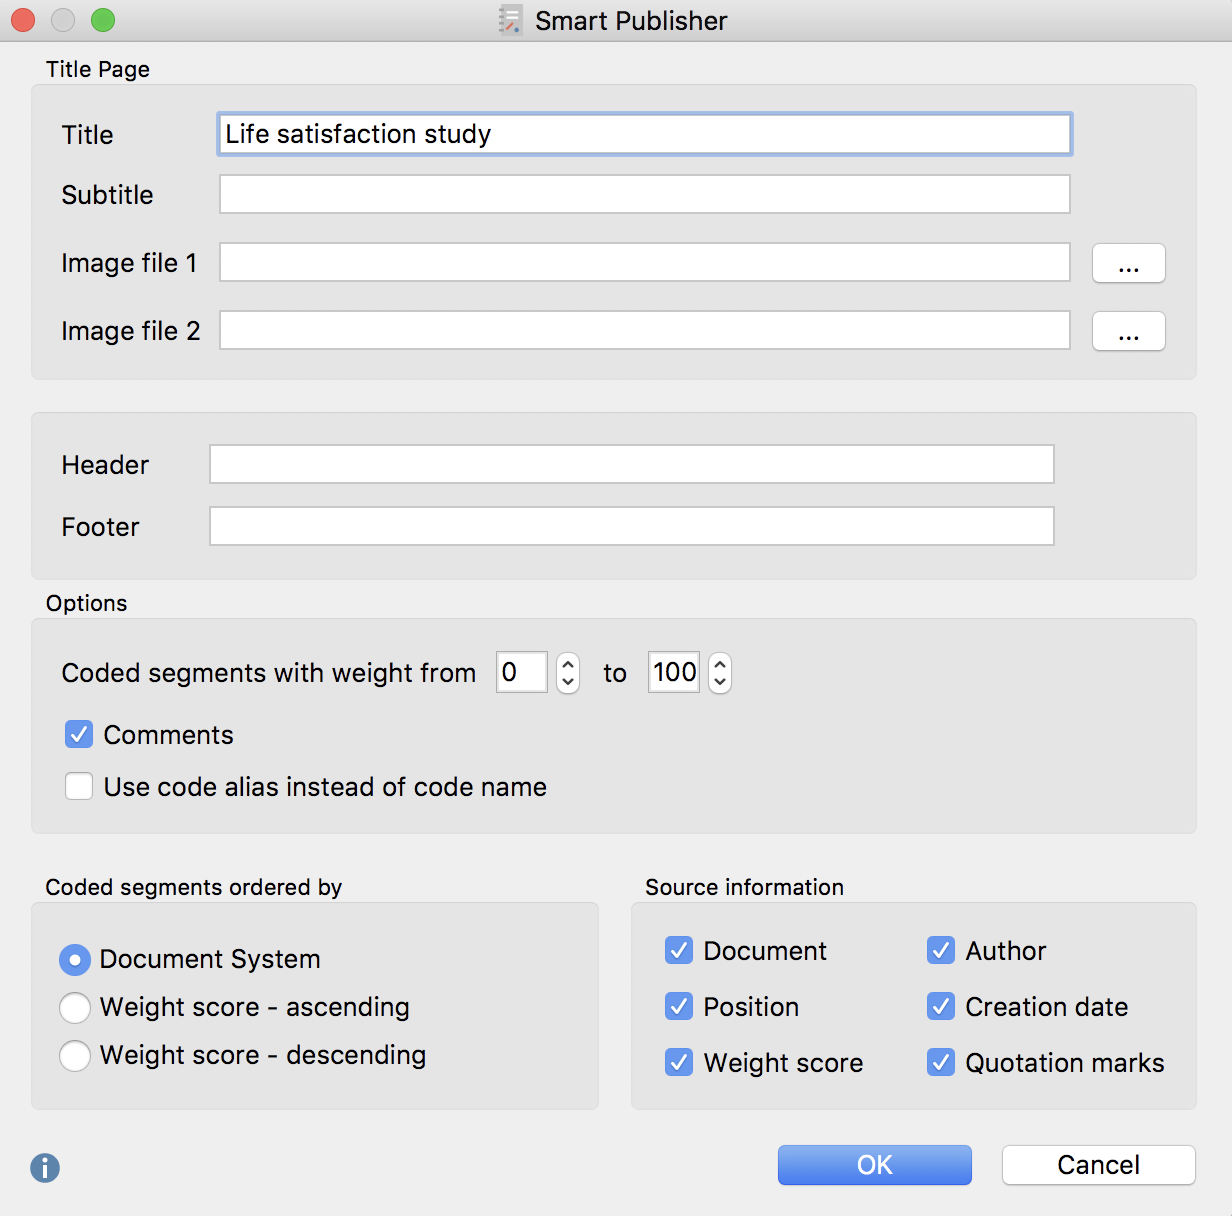 Smart Publisher settings